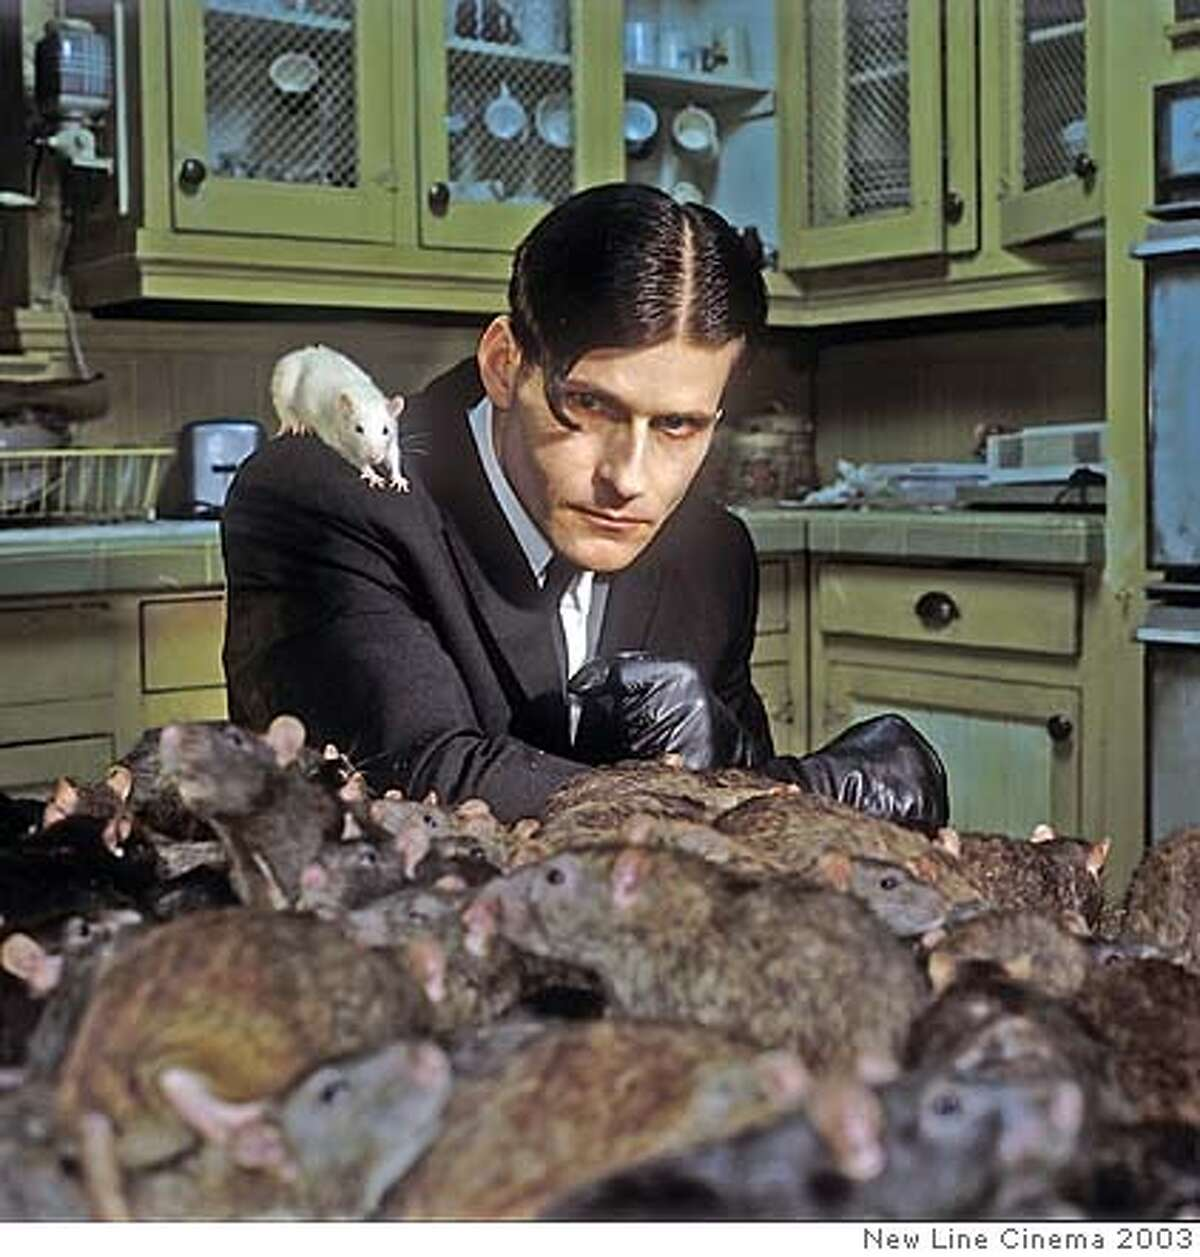 THIS IS A HANDOUT IMAGE. PLEASE VERIFY RIGHTS. Crispin Glover stars in New Line Cinema's